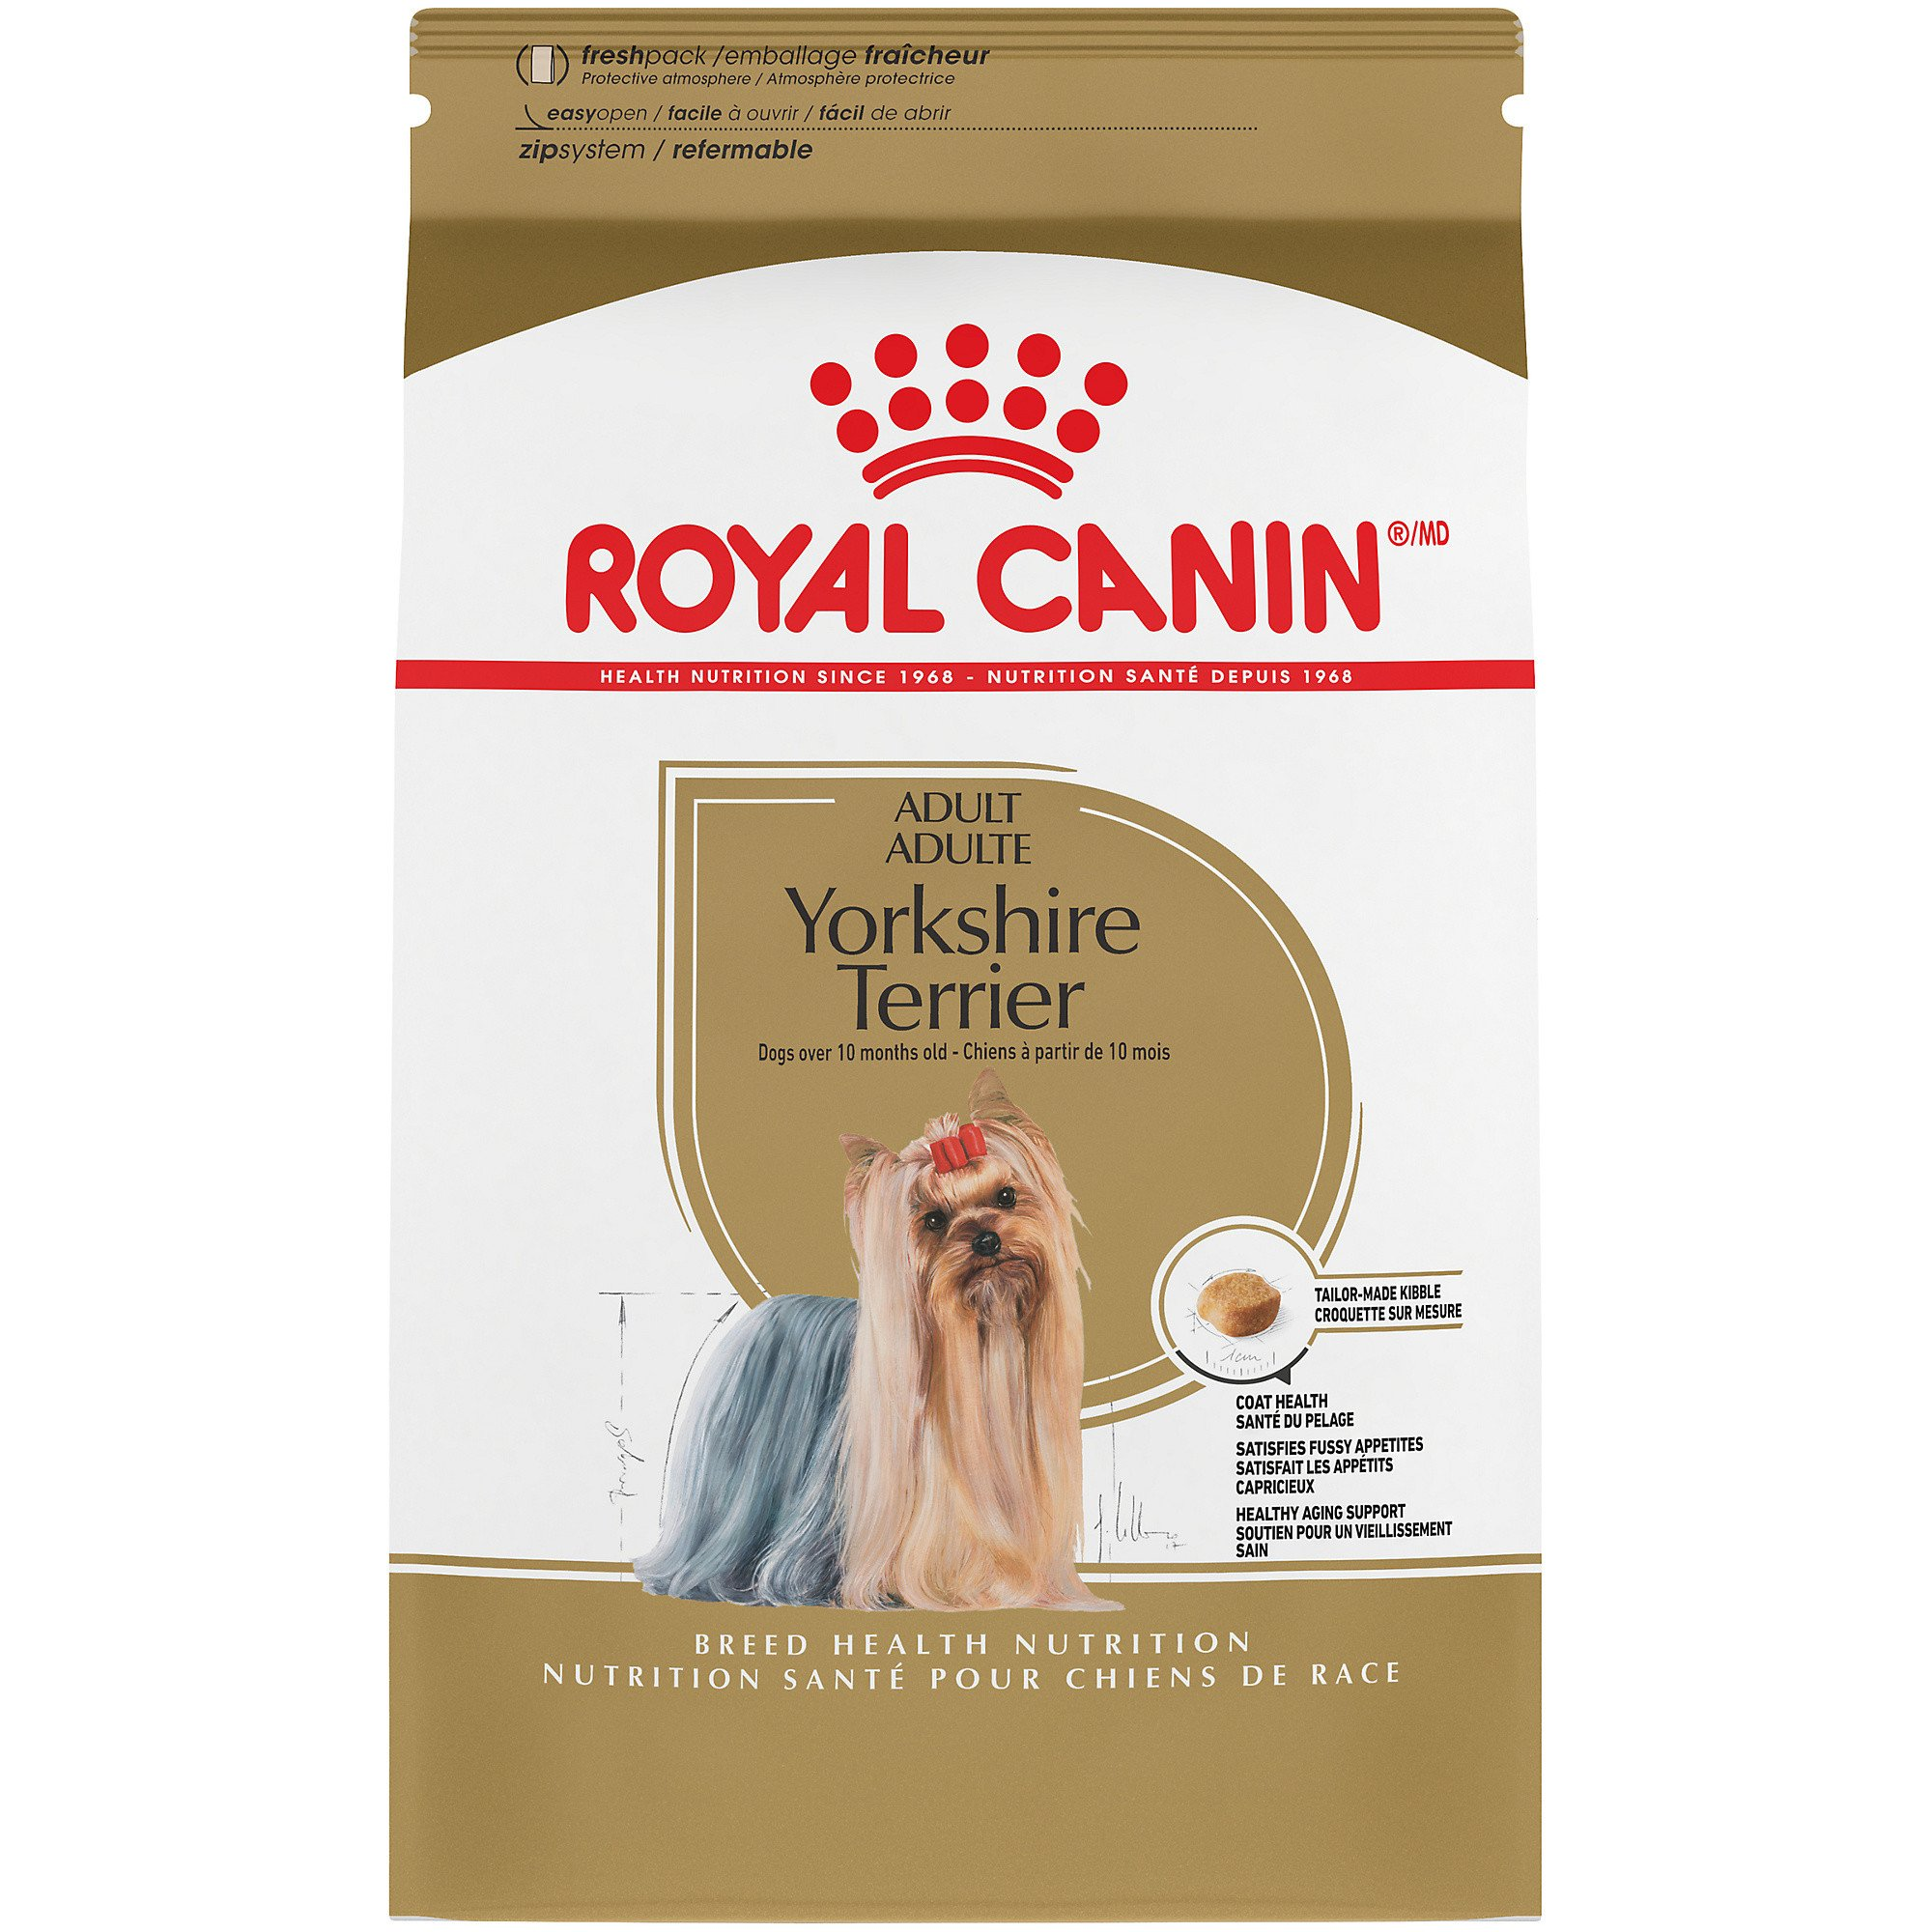 Royal Canin Breed Health Nutrition Yorkshire Terrier Adult Dry Dog Food, 2.5 lbs.